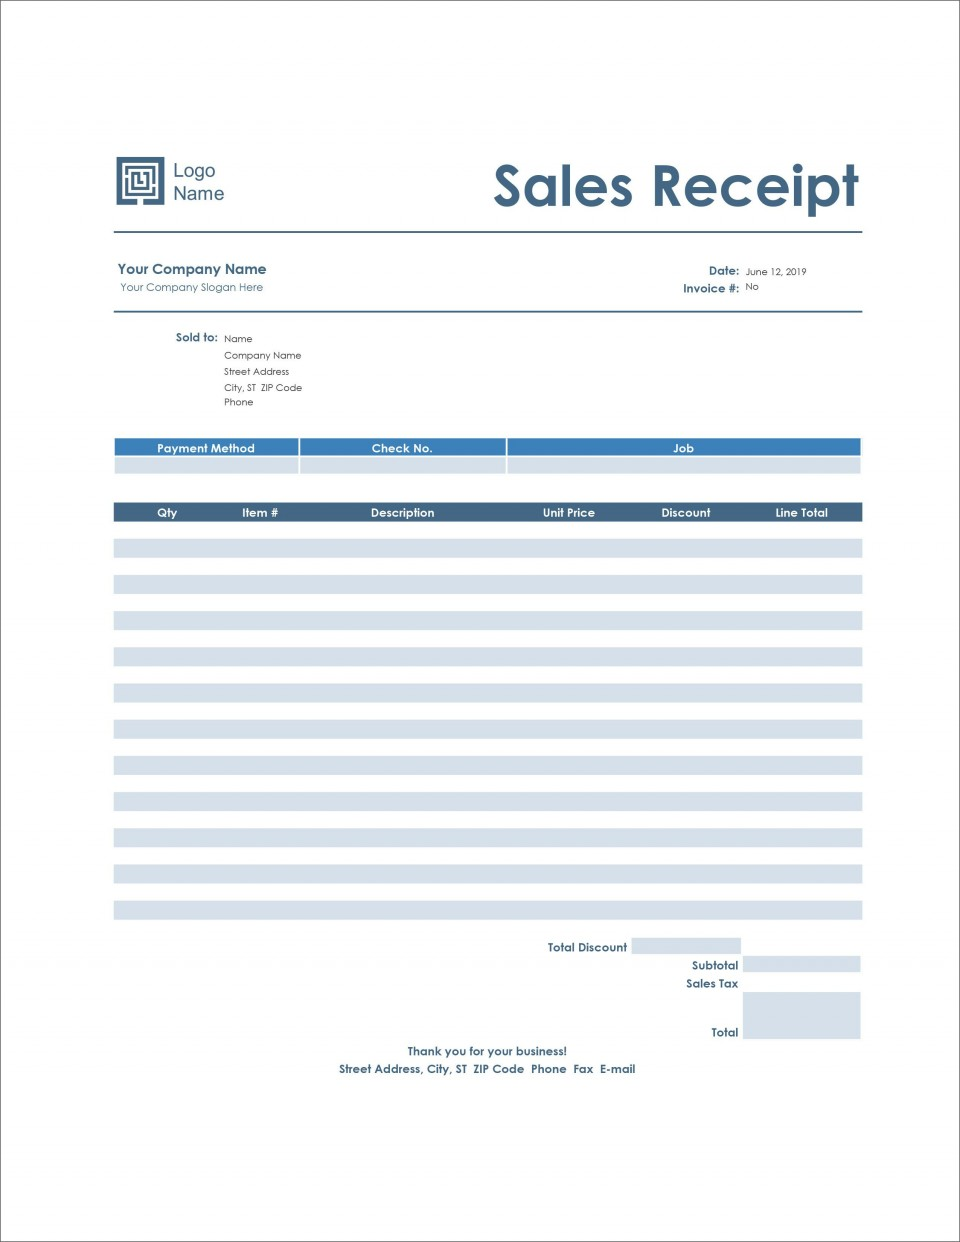 006 Staggering Receipt Template Microsoft Word Design  Invoice Free Money Blank960